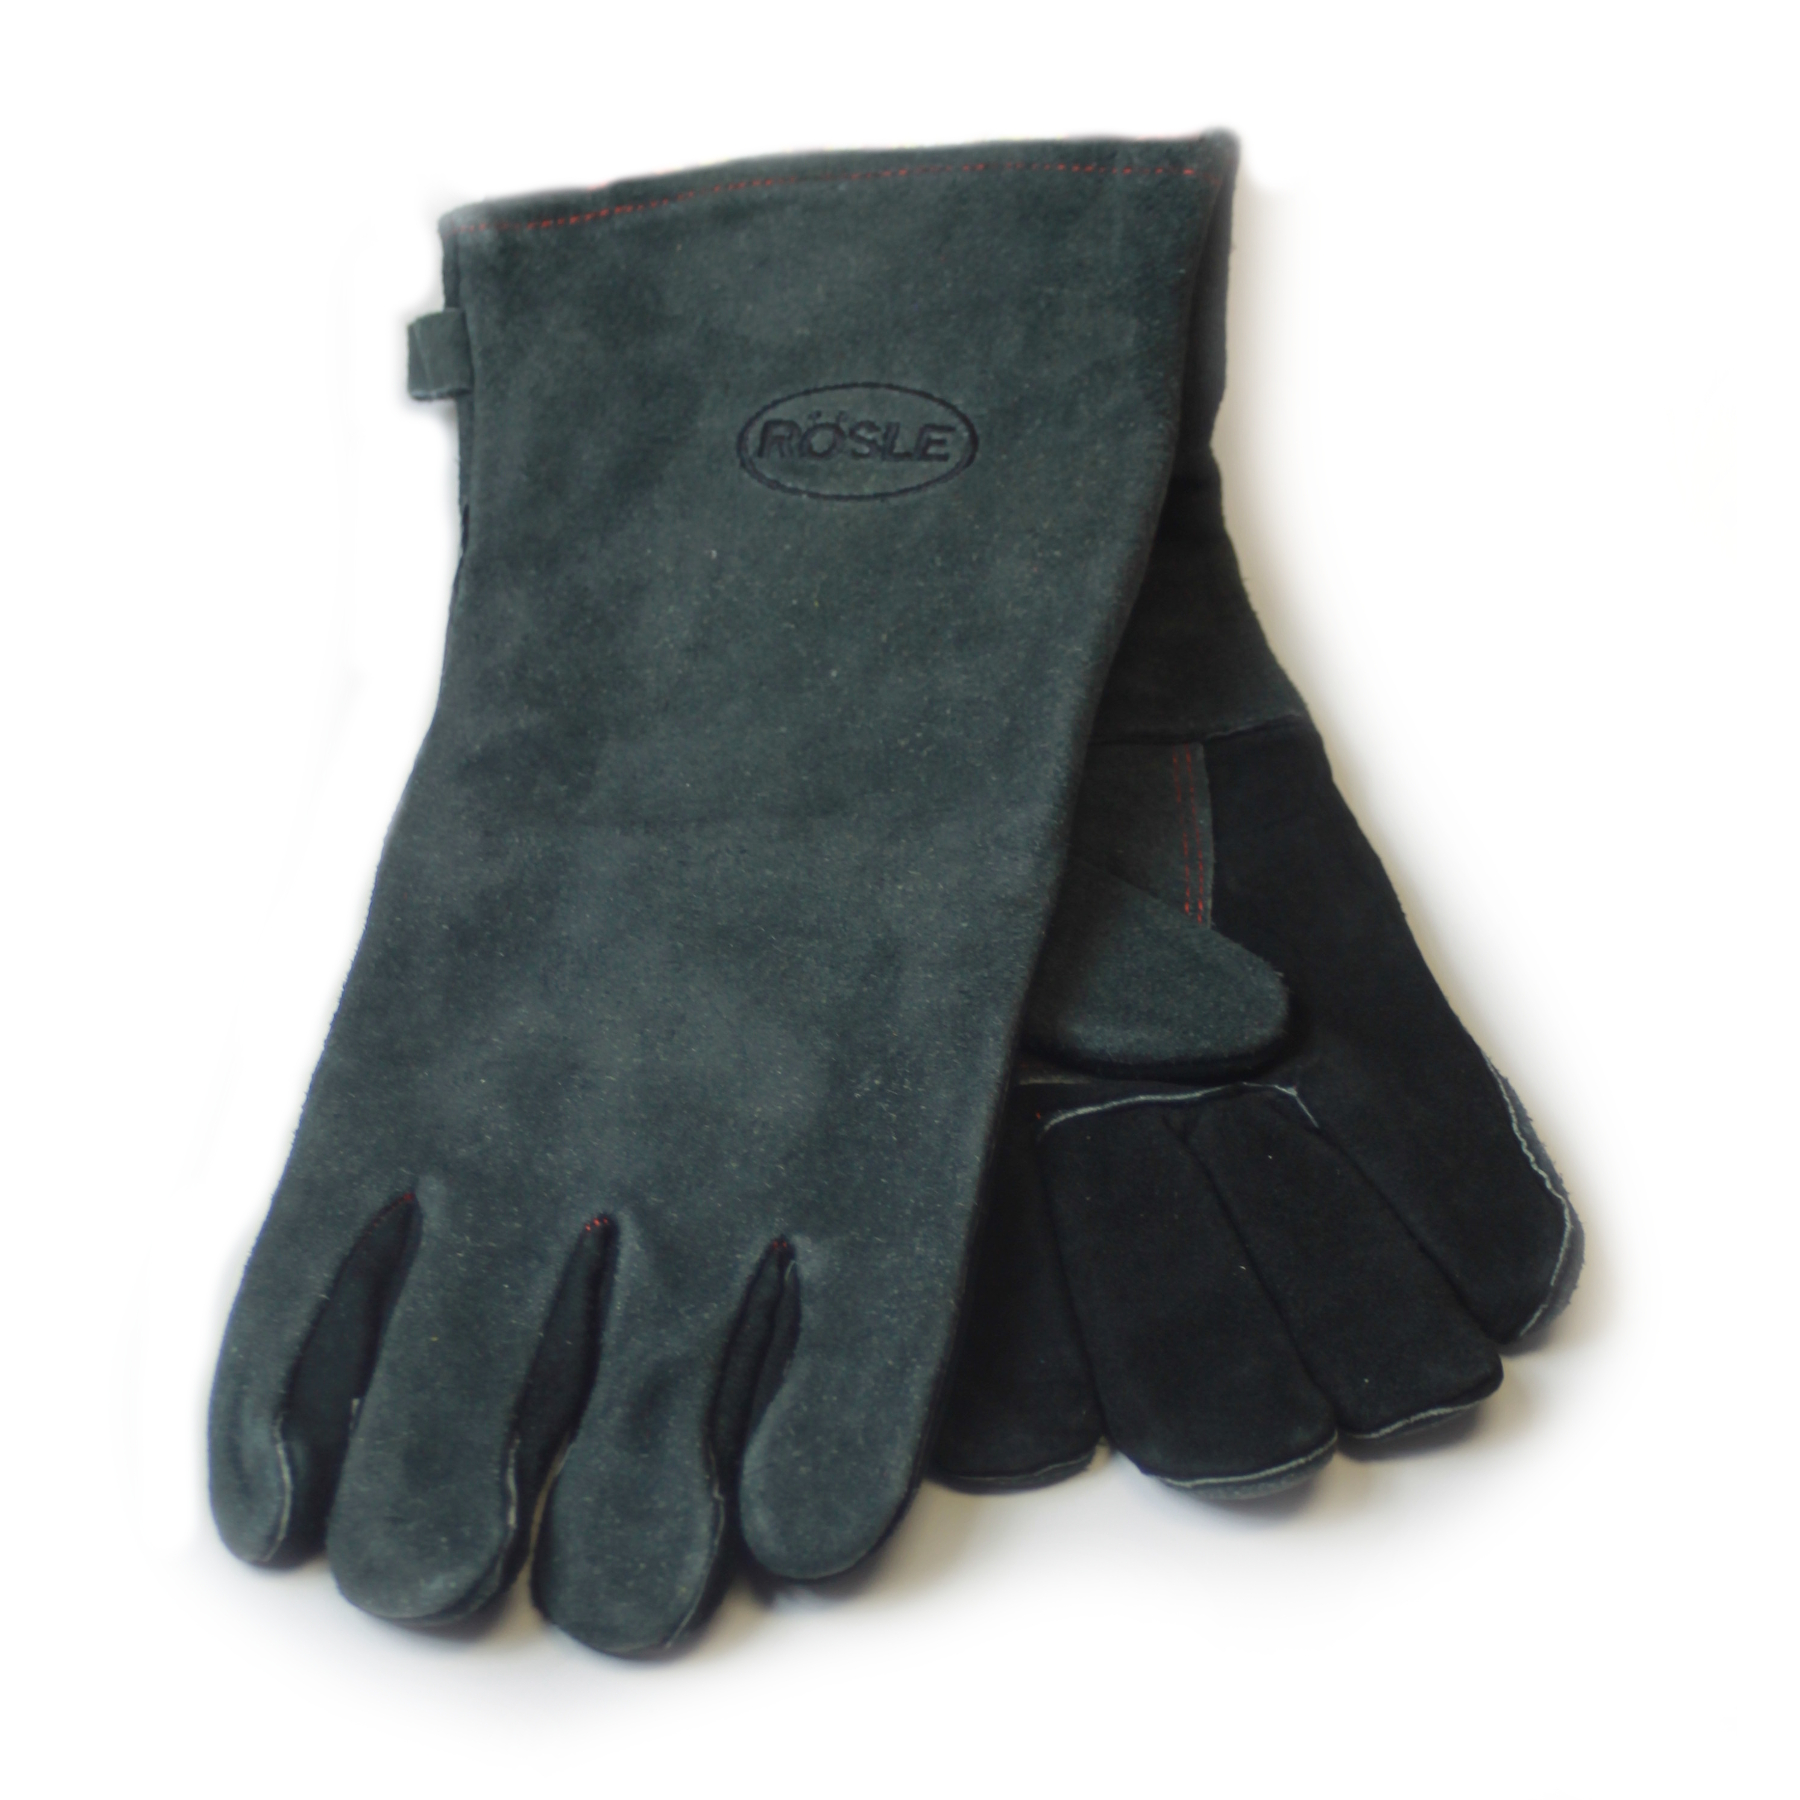 Rosle Leather Grilling Gloves, 16 Inch